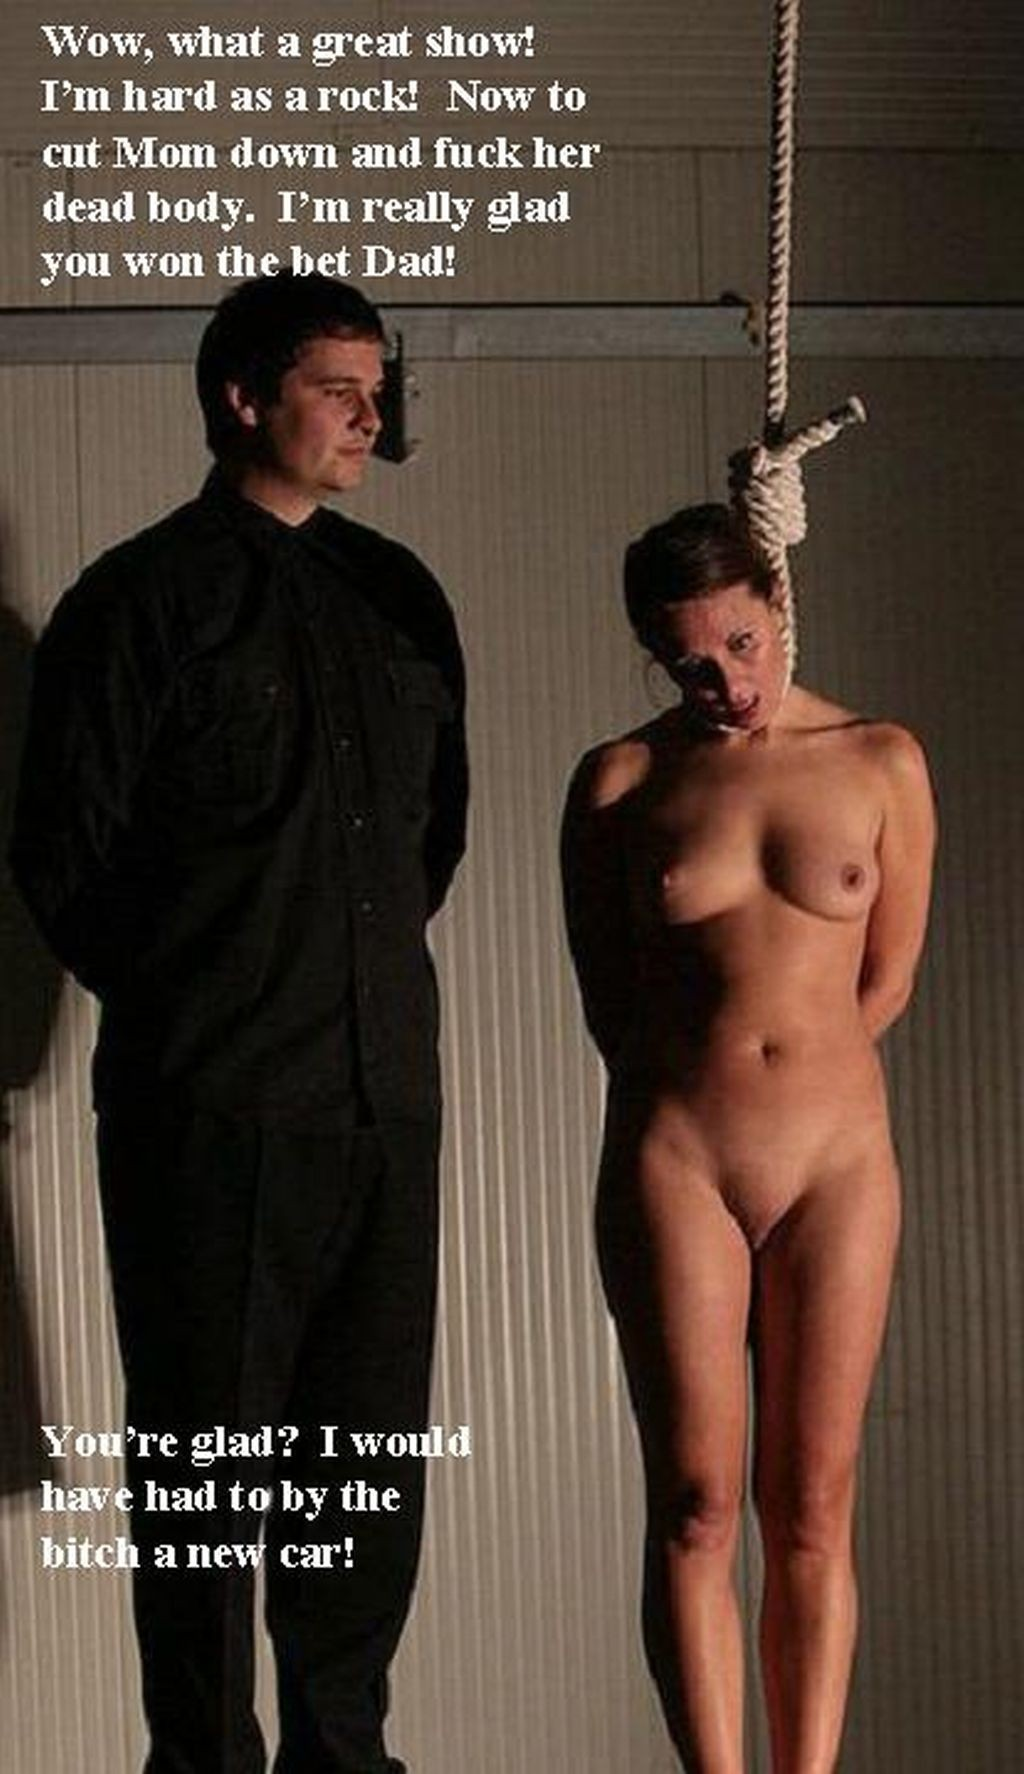 Have Nude teen fucked and hang well! You